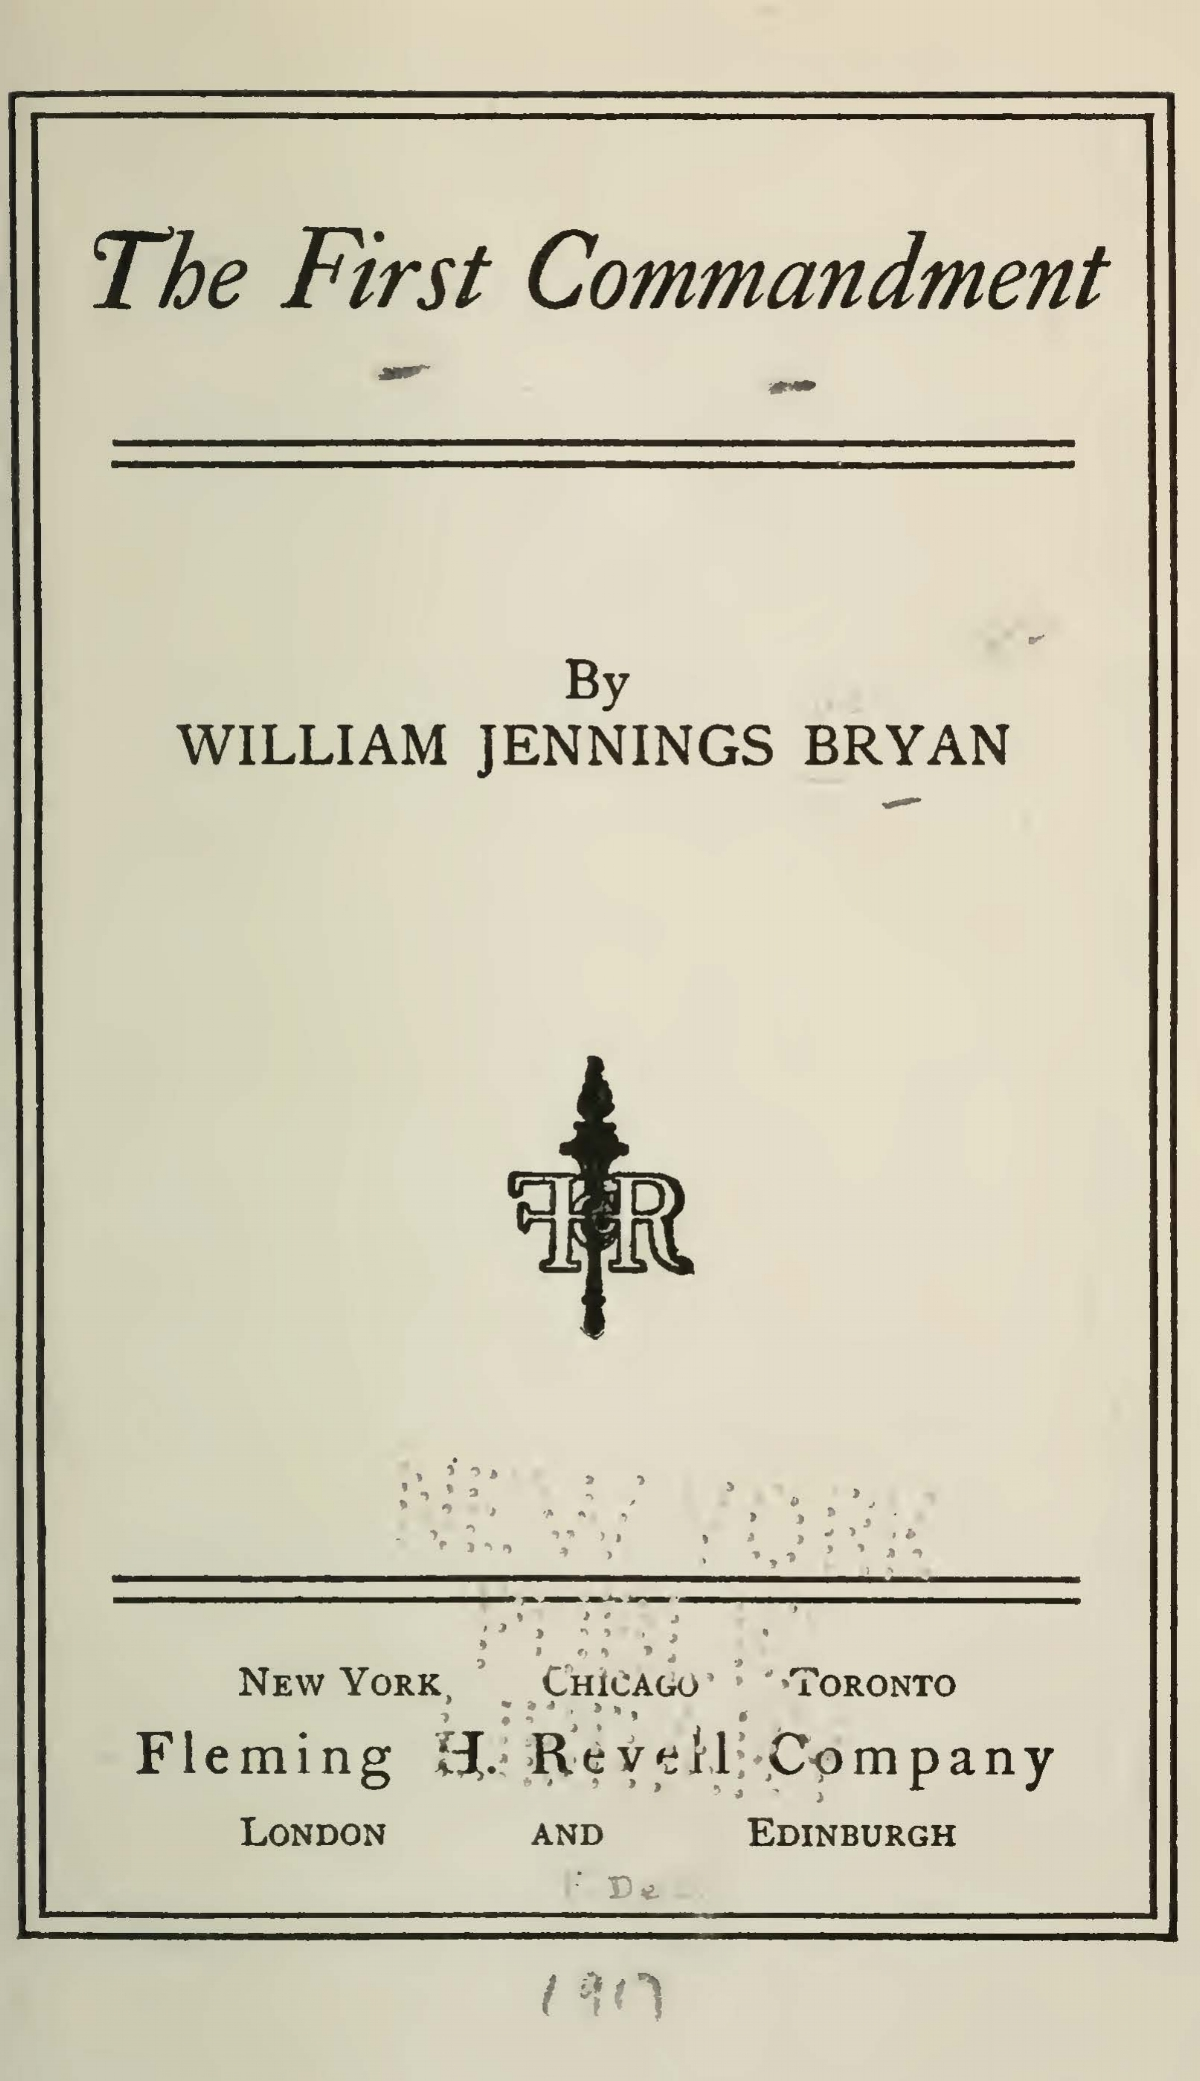 Bryan, Sr., William Jennings, The First Commandment Title Page.jpg